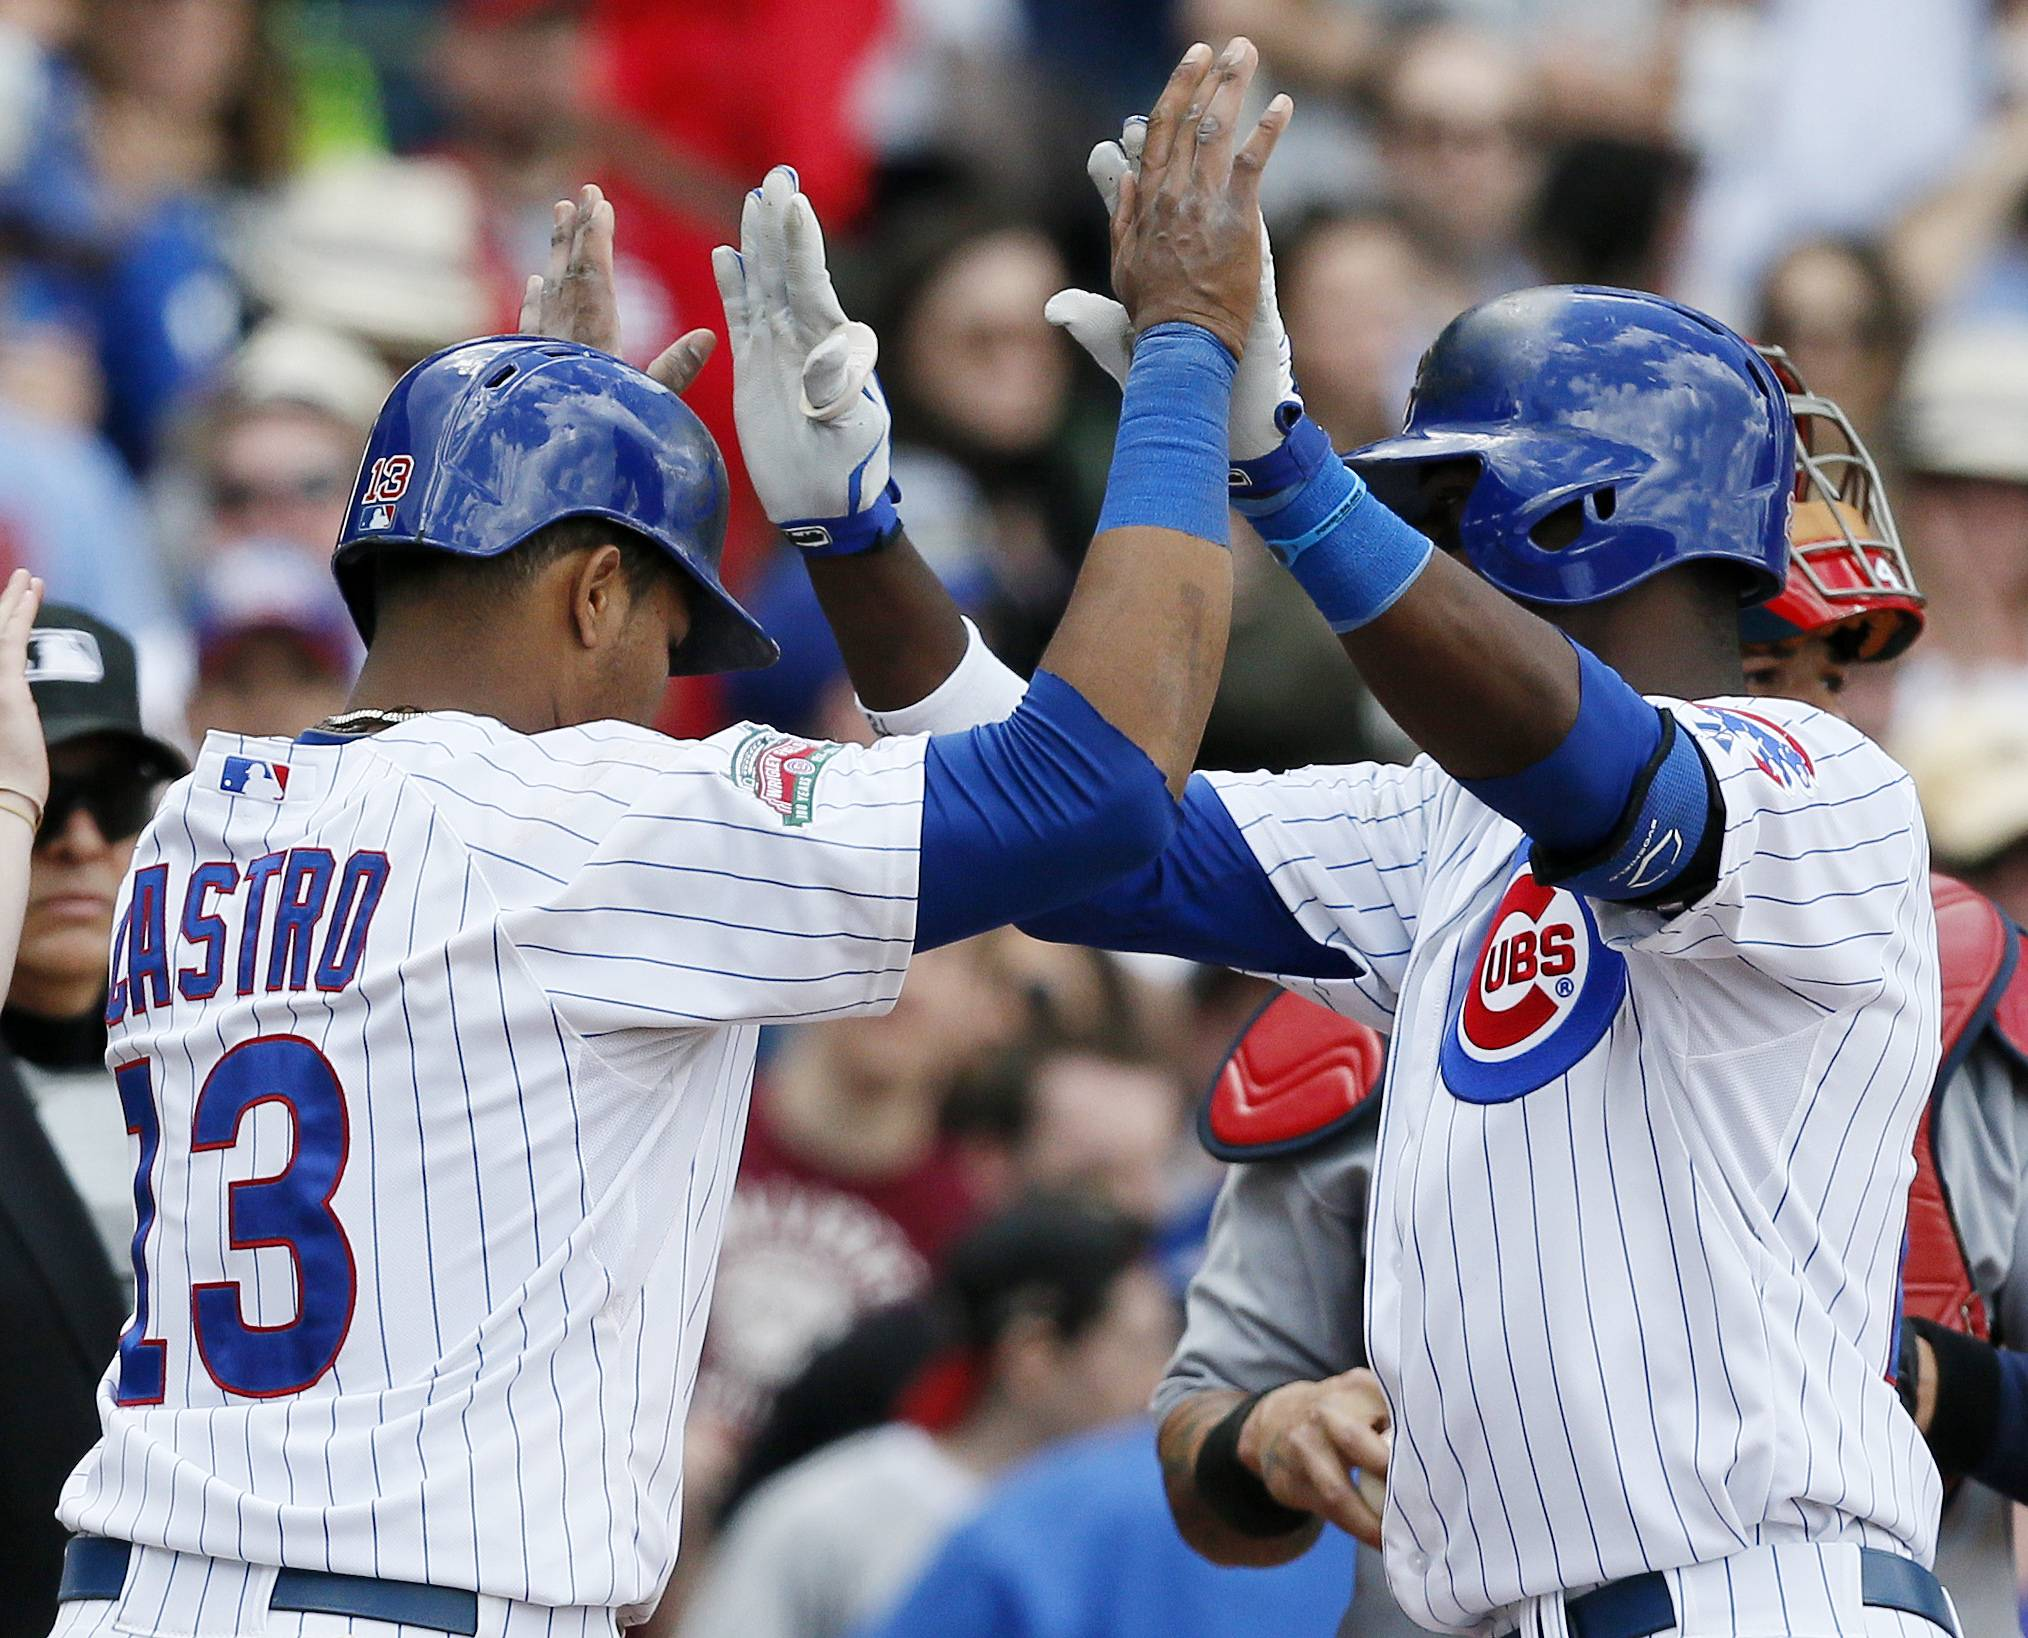 After hitting a two-run home run, Chicago Cubs' Junior Lake, right, celebrates with Starlin Castro, left, who scored, during the sixth inning of a baseball game against the St. Louis Cardinals on Saturday, May 3, 2014, in Chicago. (AP Photo/Andrew A. Nelles)